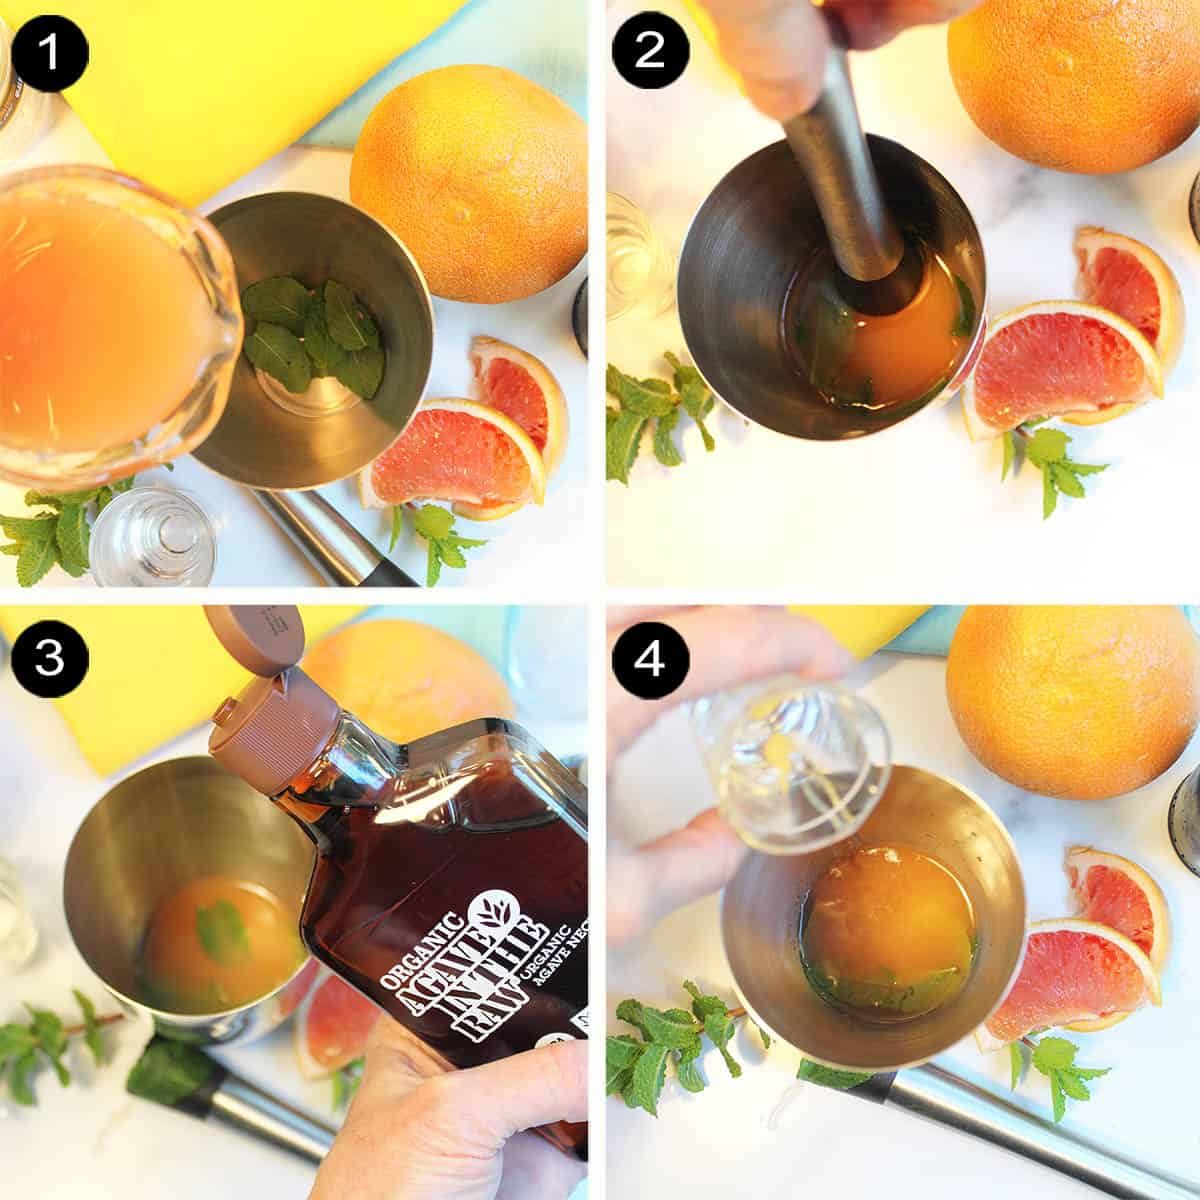 Prep steps 1-4 to make cocktail